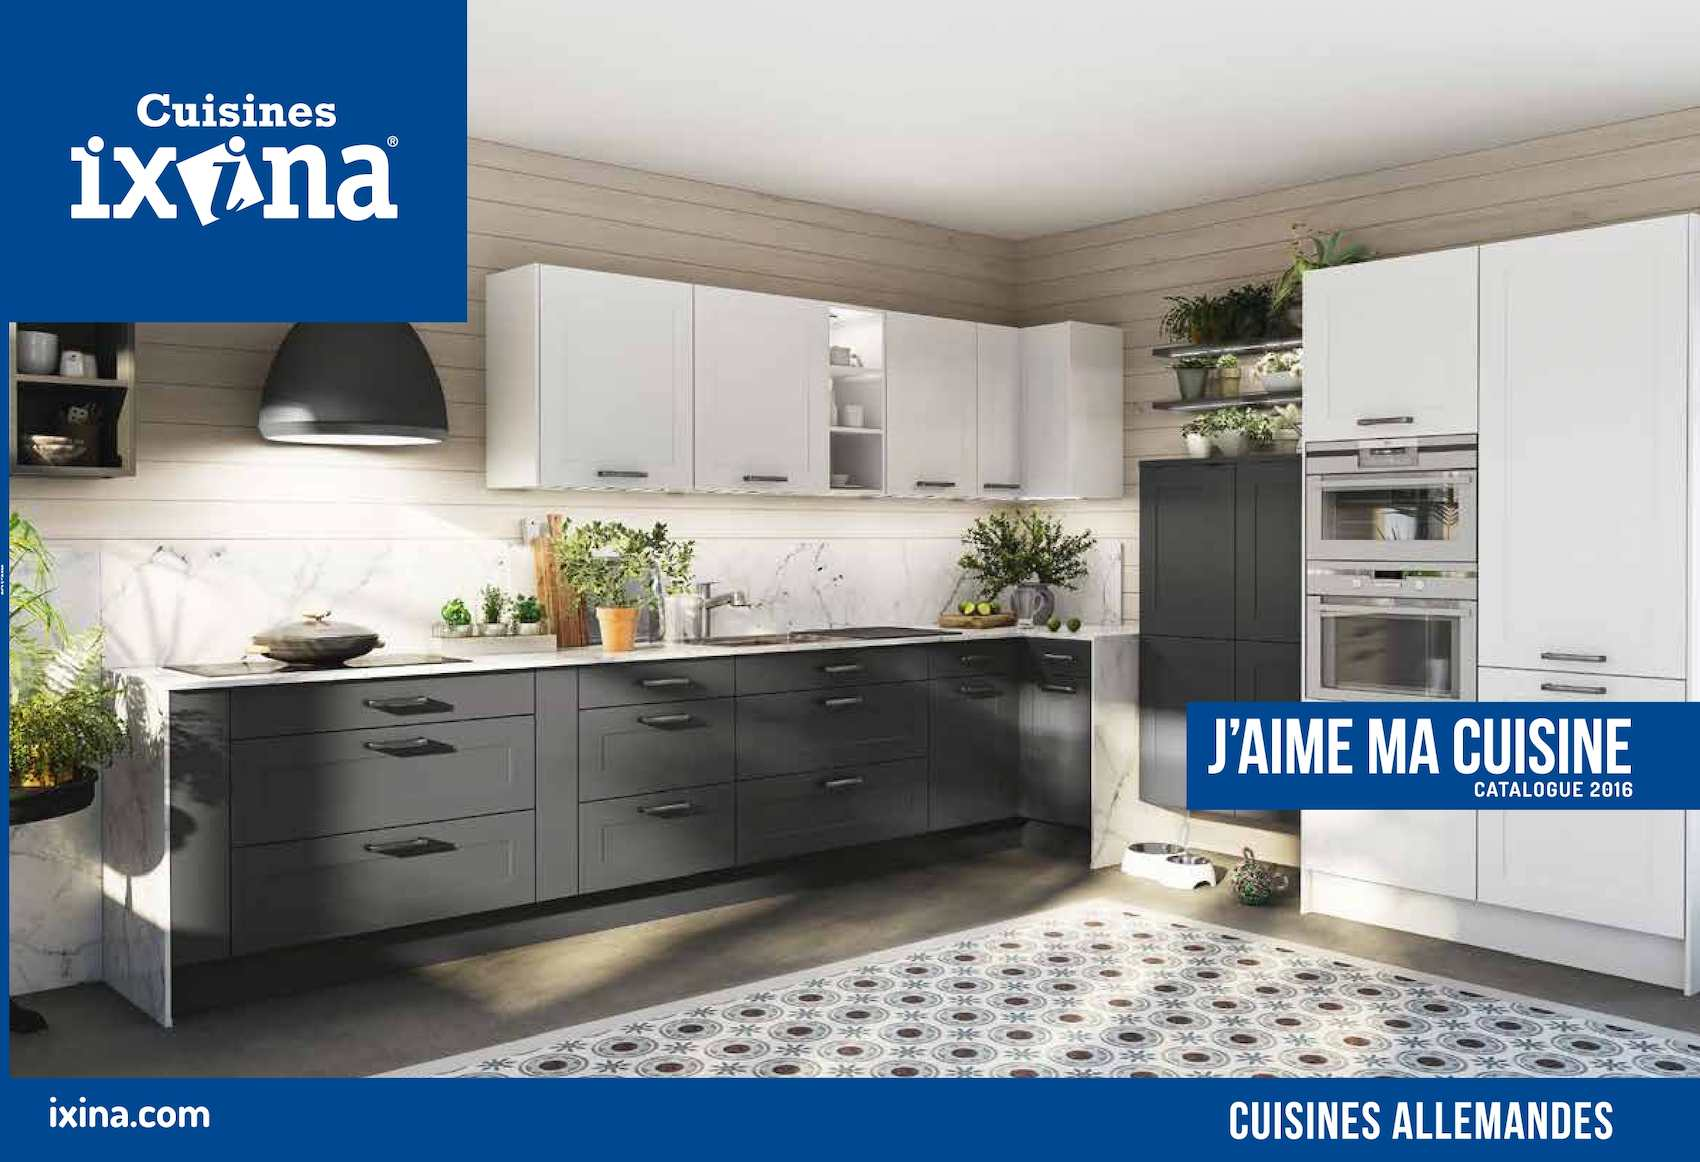 Calam o catalogue ixina 2016 final for Voir les cuisines